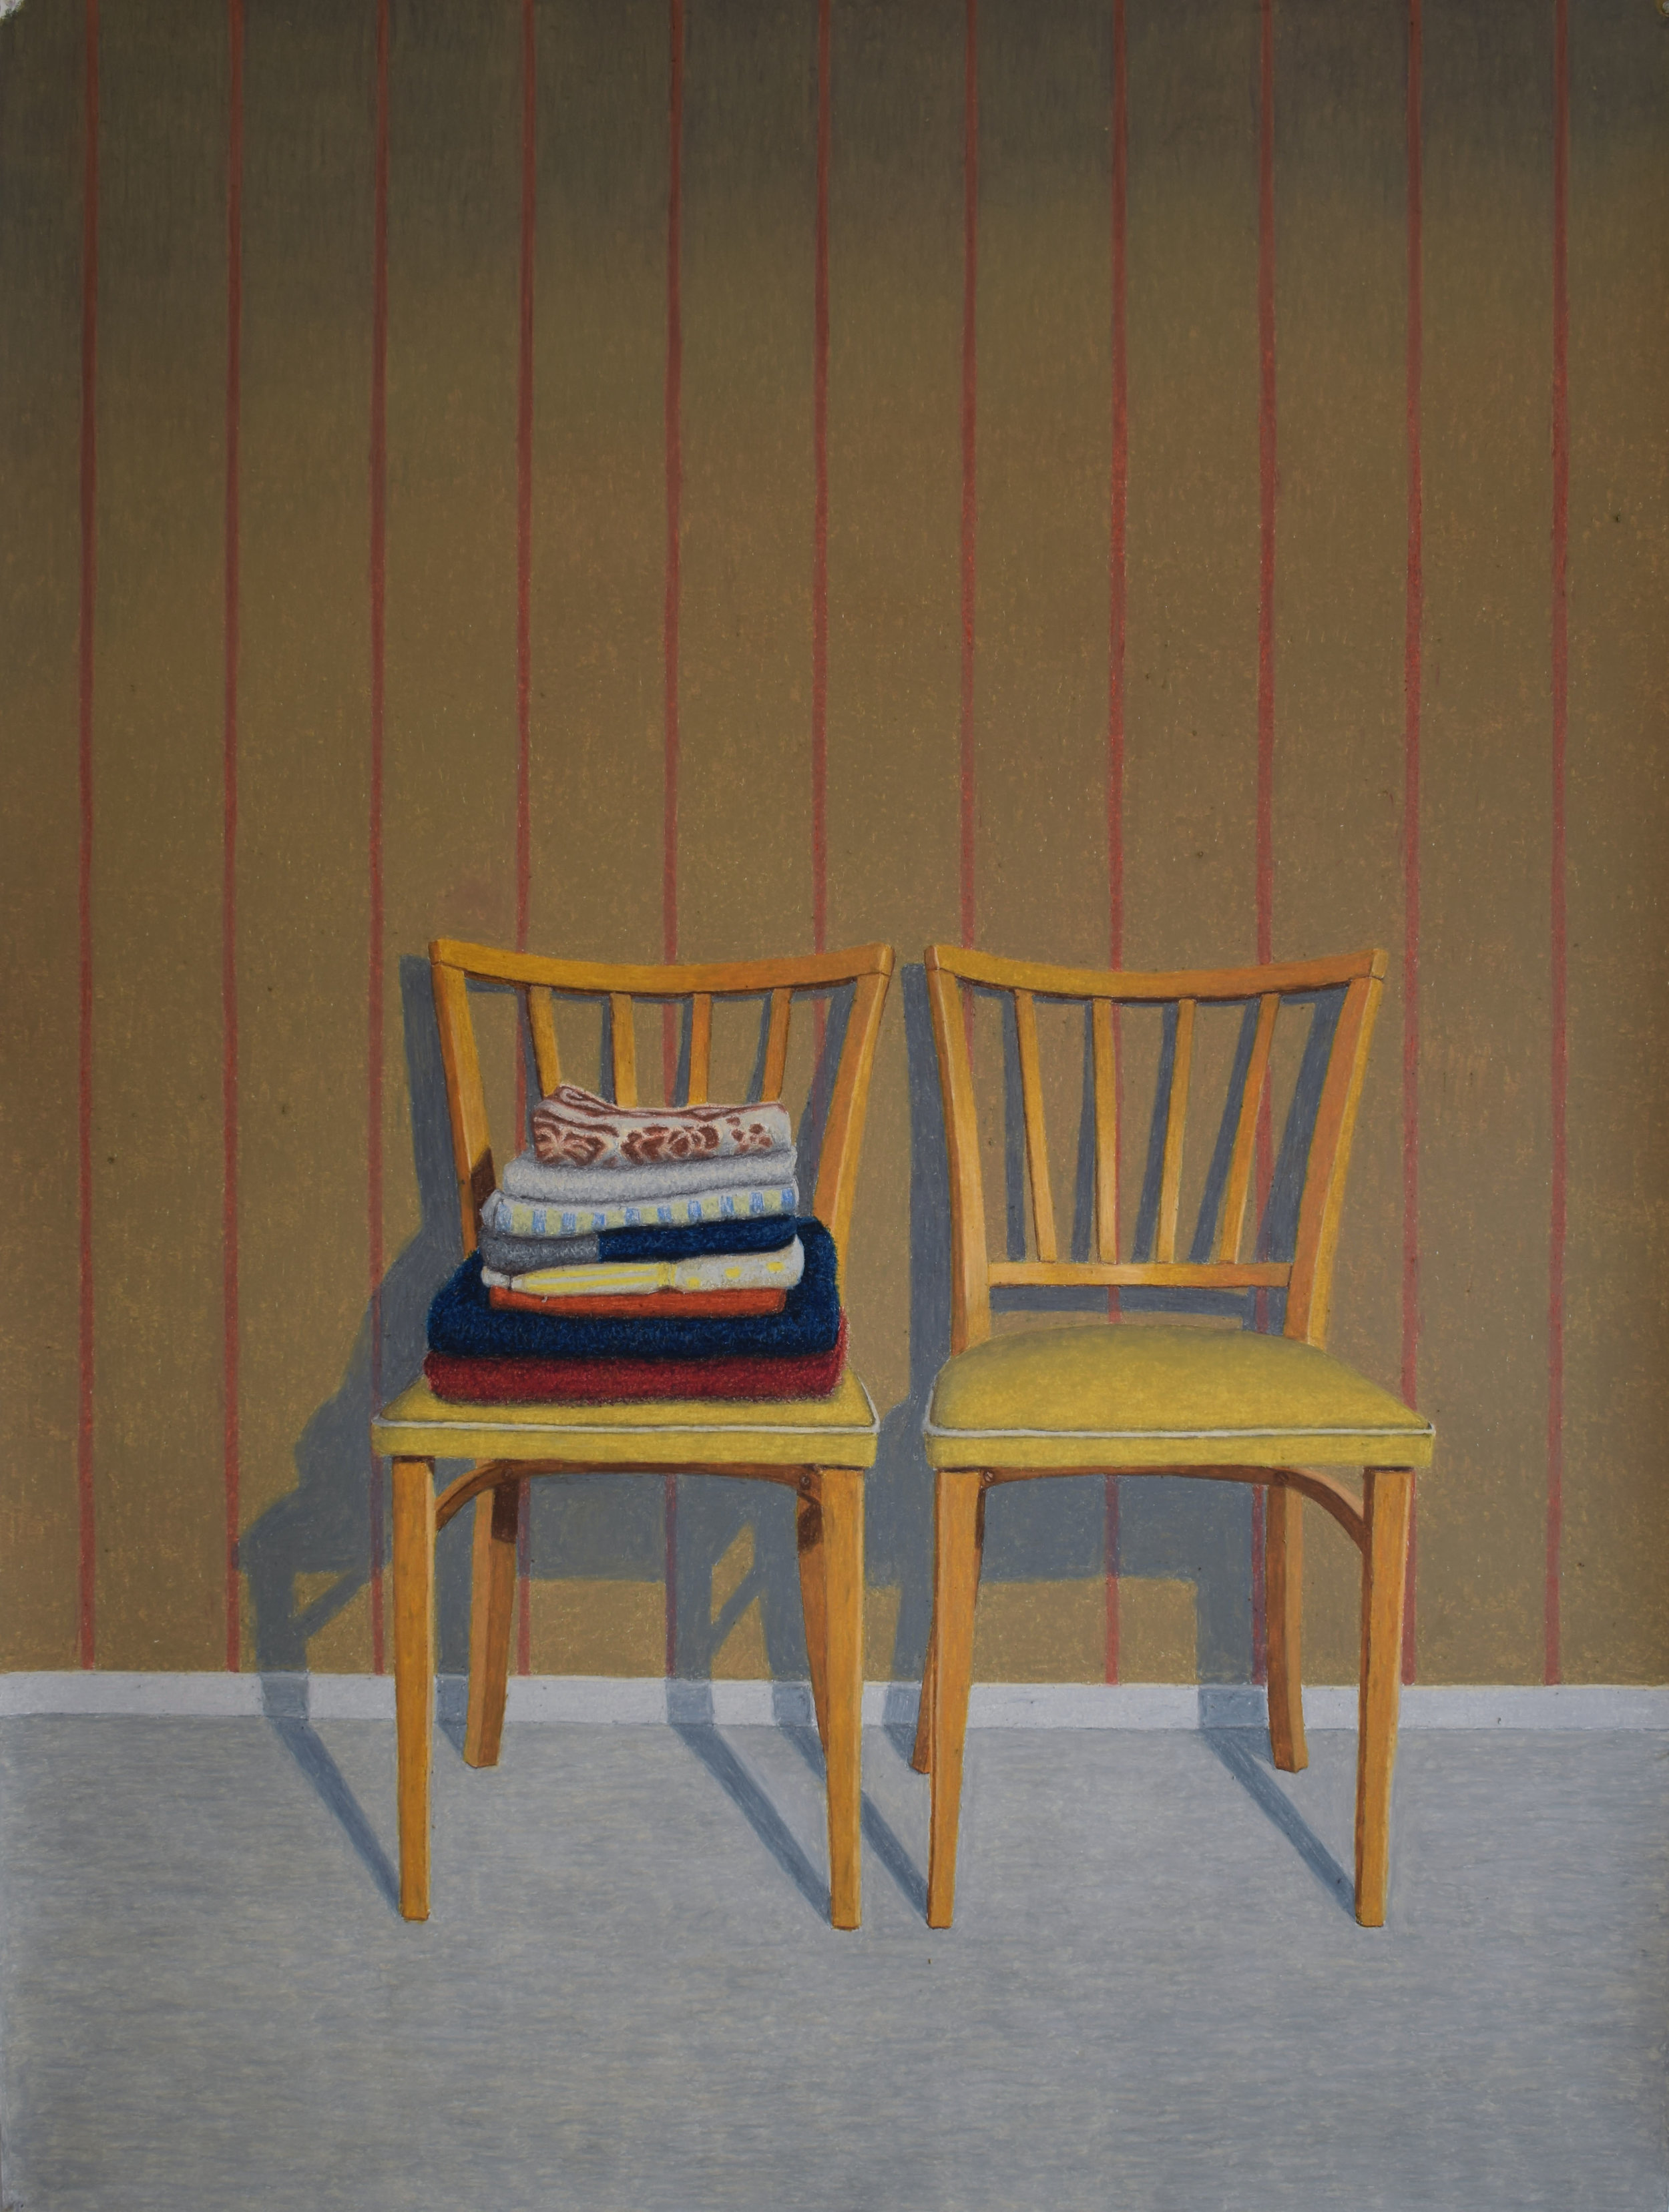 Two Chairs  Oil pastel on paper, 2018